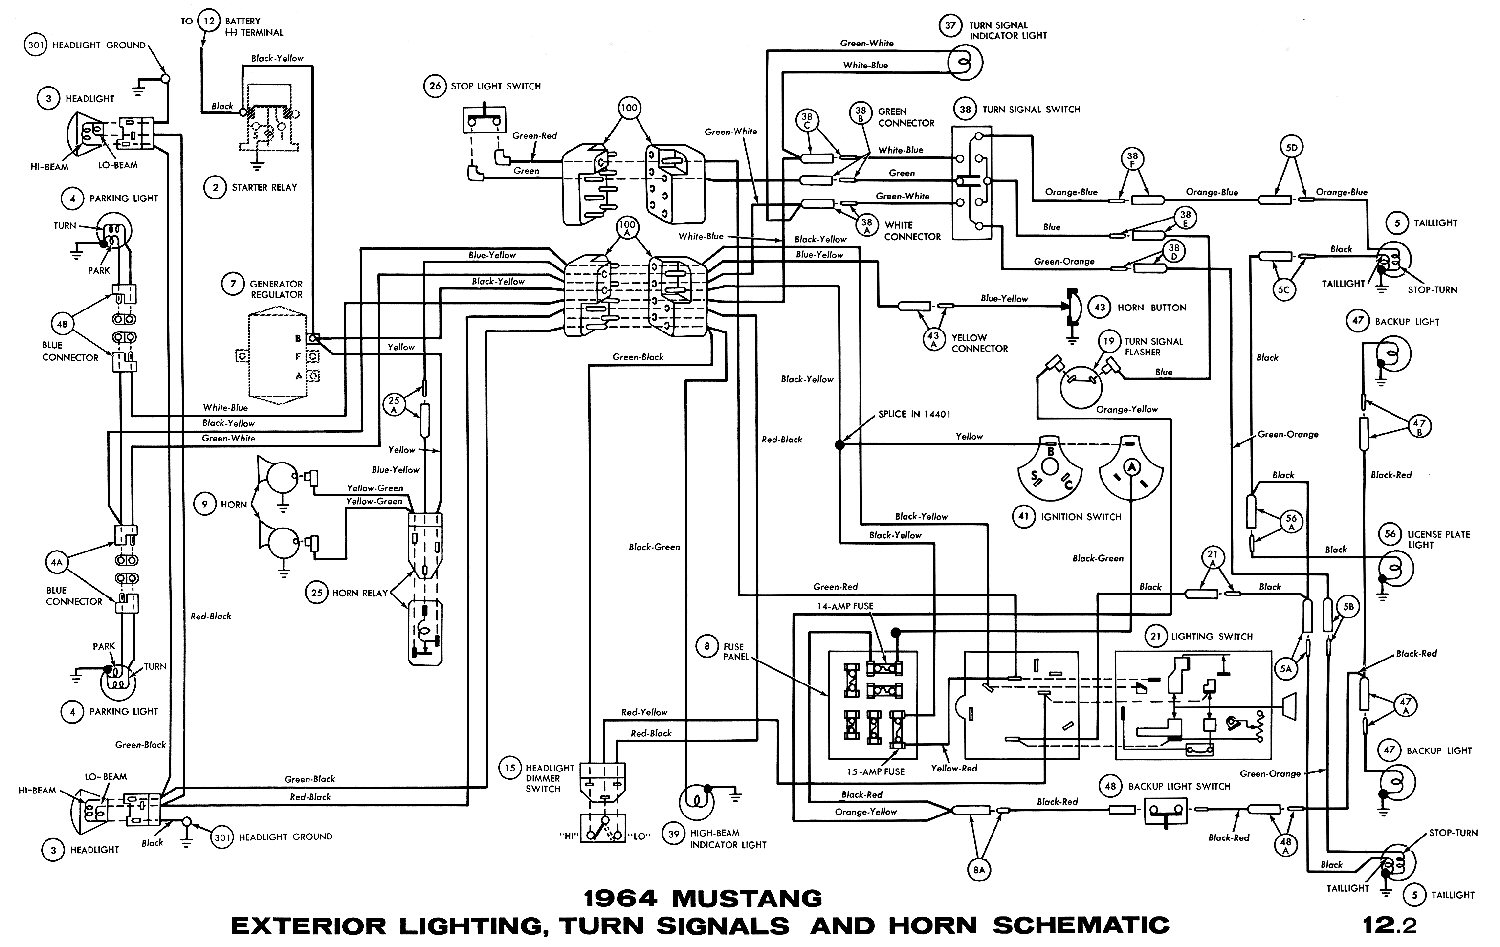 1964i 1965 mustang wiring diagram 1965 lincoln wiring diagram \u2022 wiring wiring harness 1964 mustang at bayanpartner.co